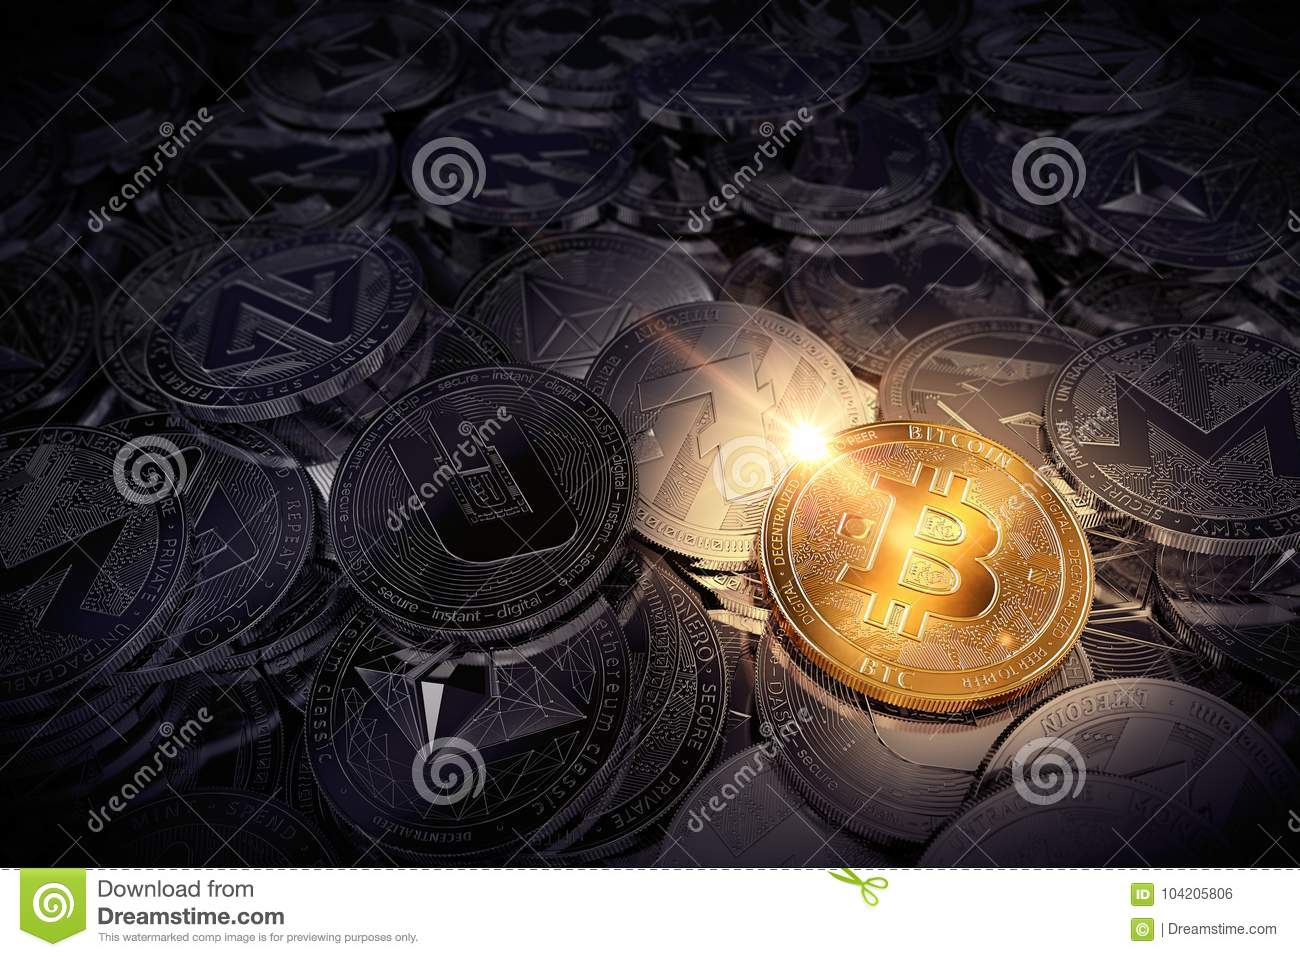 Huge stack of physical cryptocurrencies with Bitcoin on the front as the leader of new virtual money